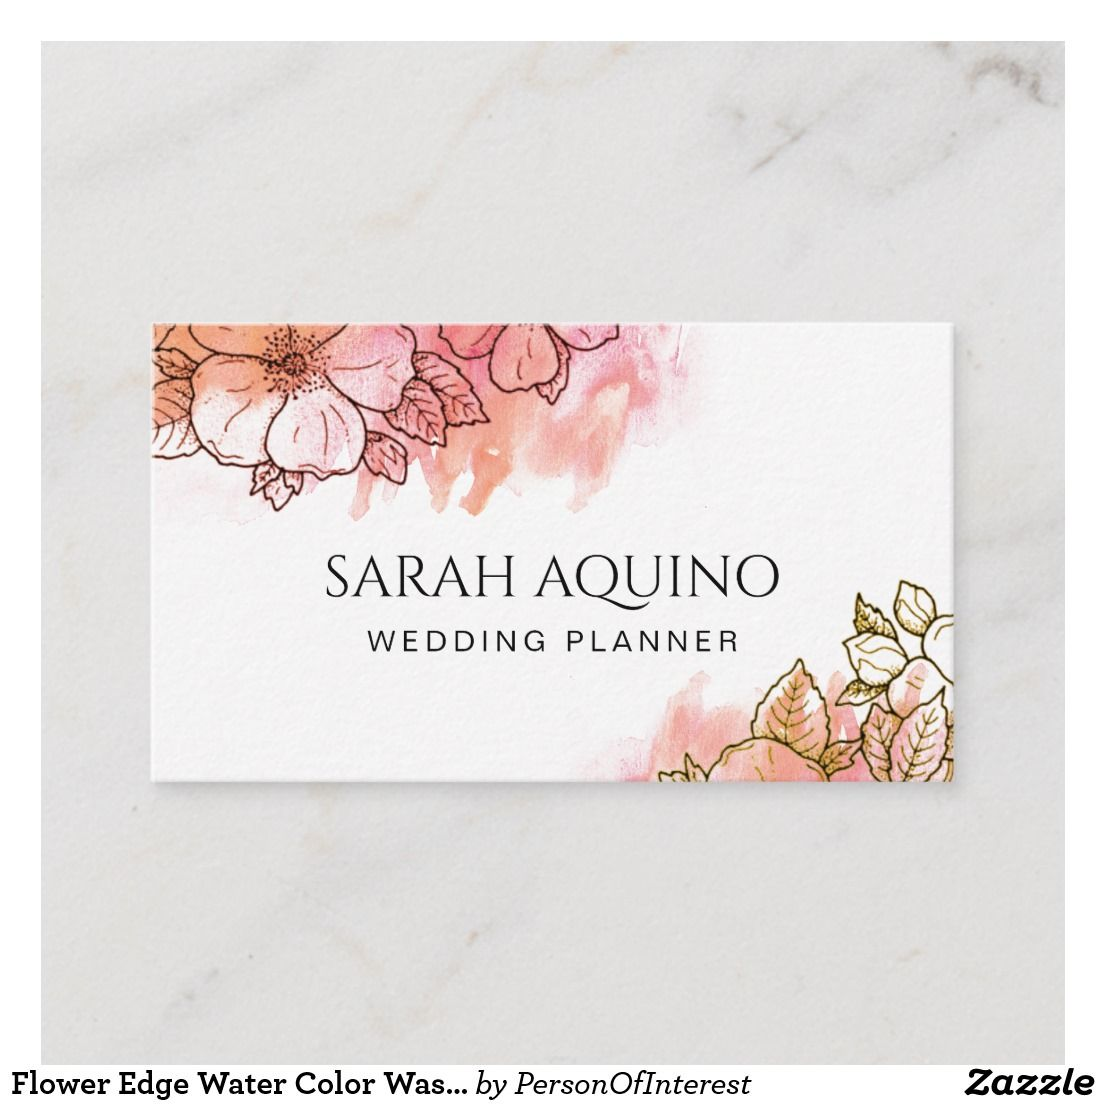 Flower Edge Water Color Wash Wedding Planner Business Card Cards Zazzle